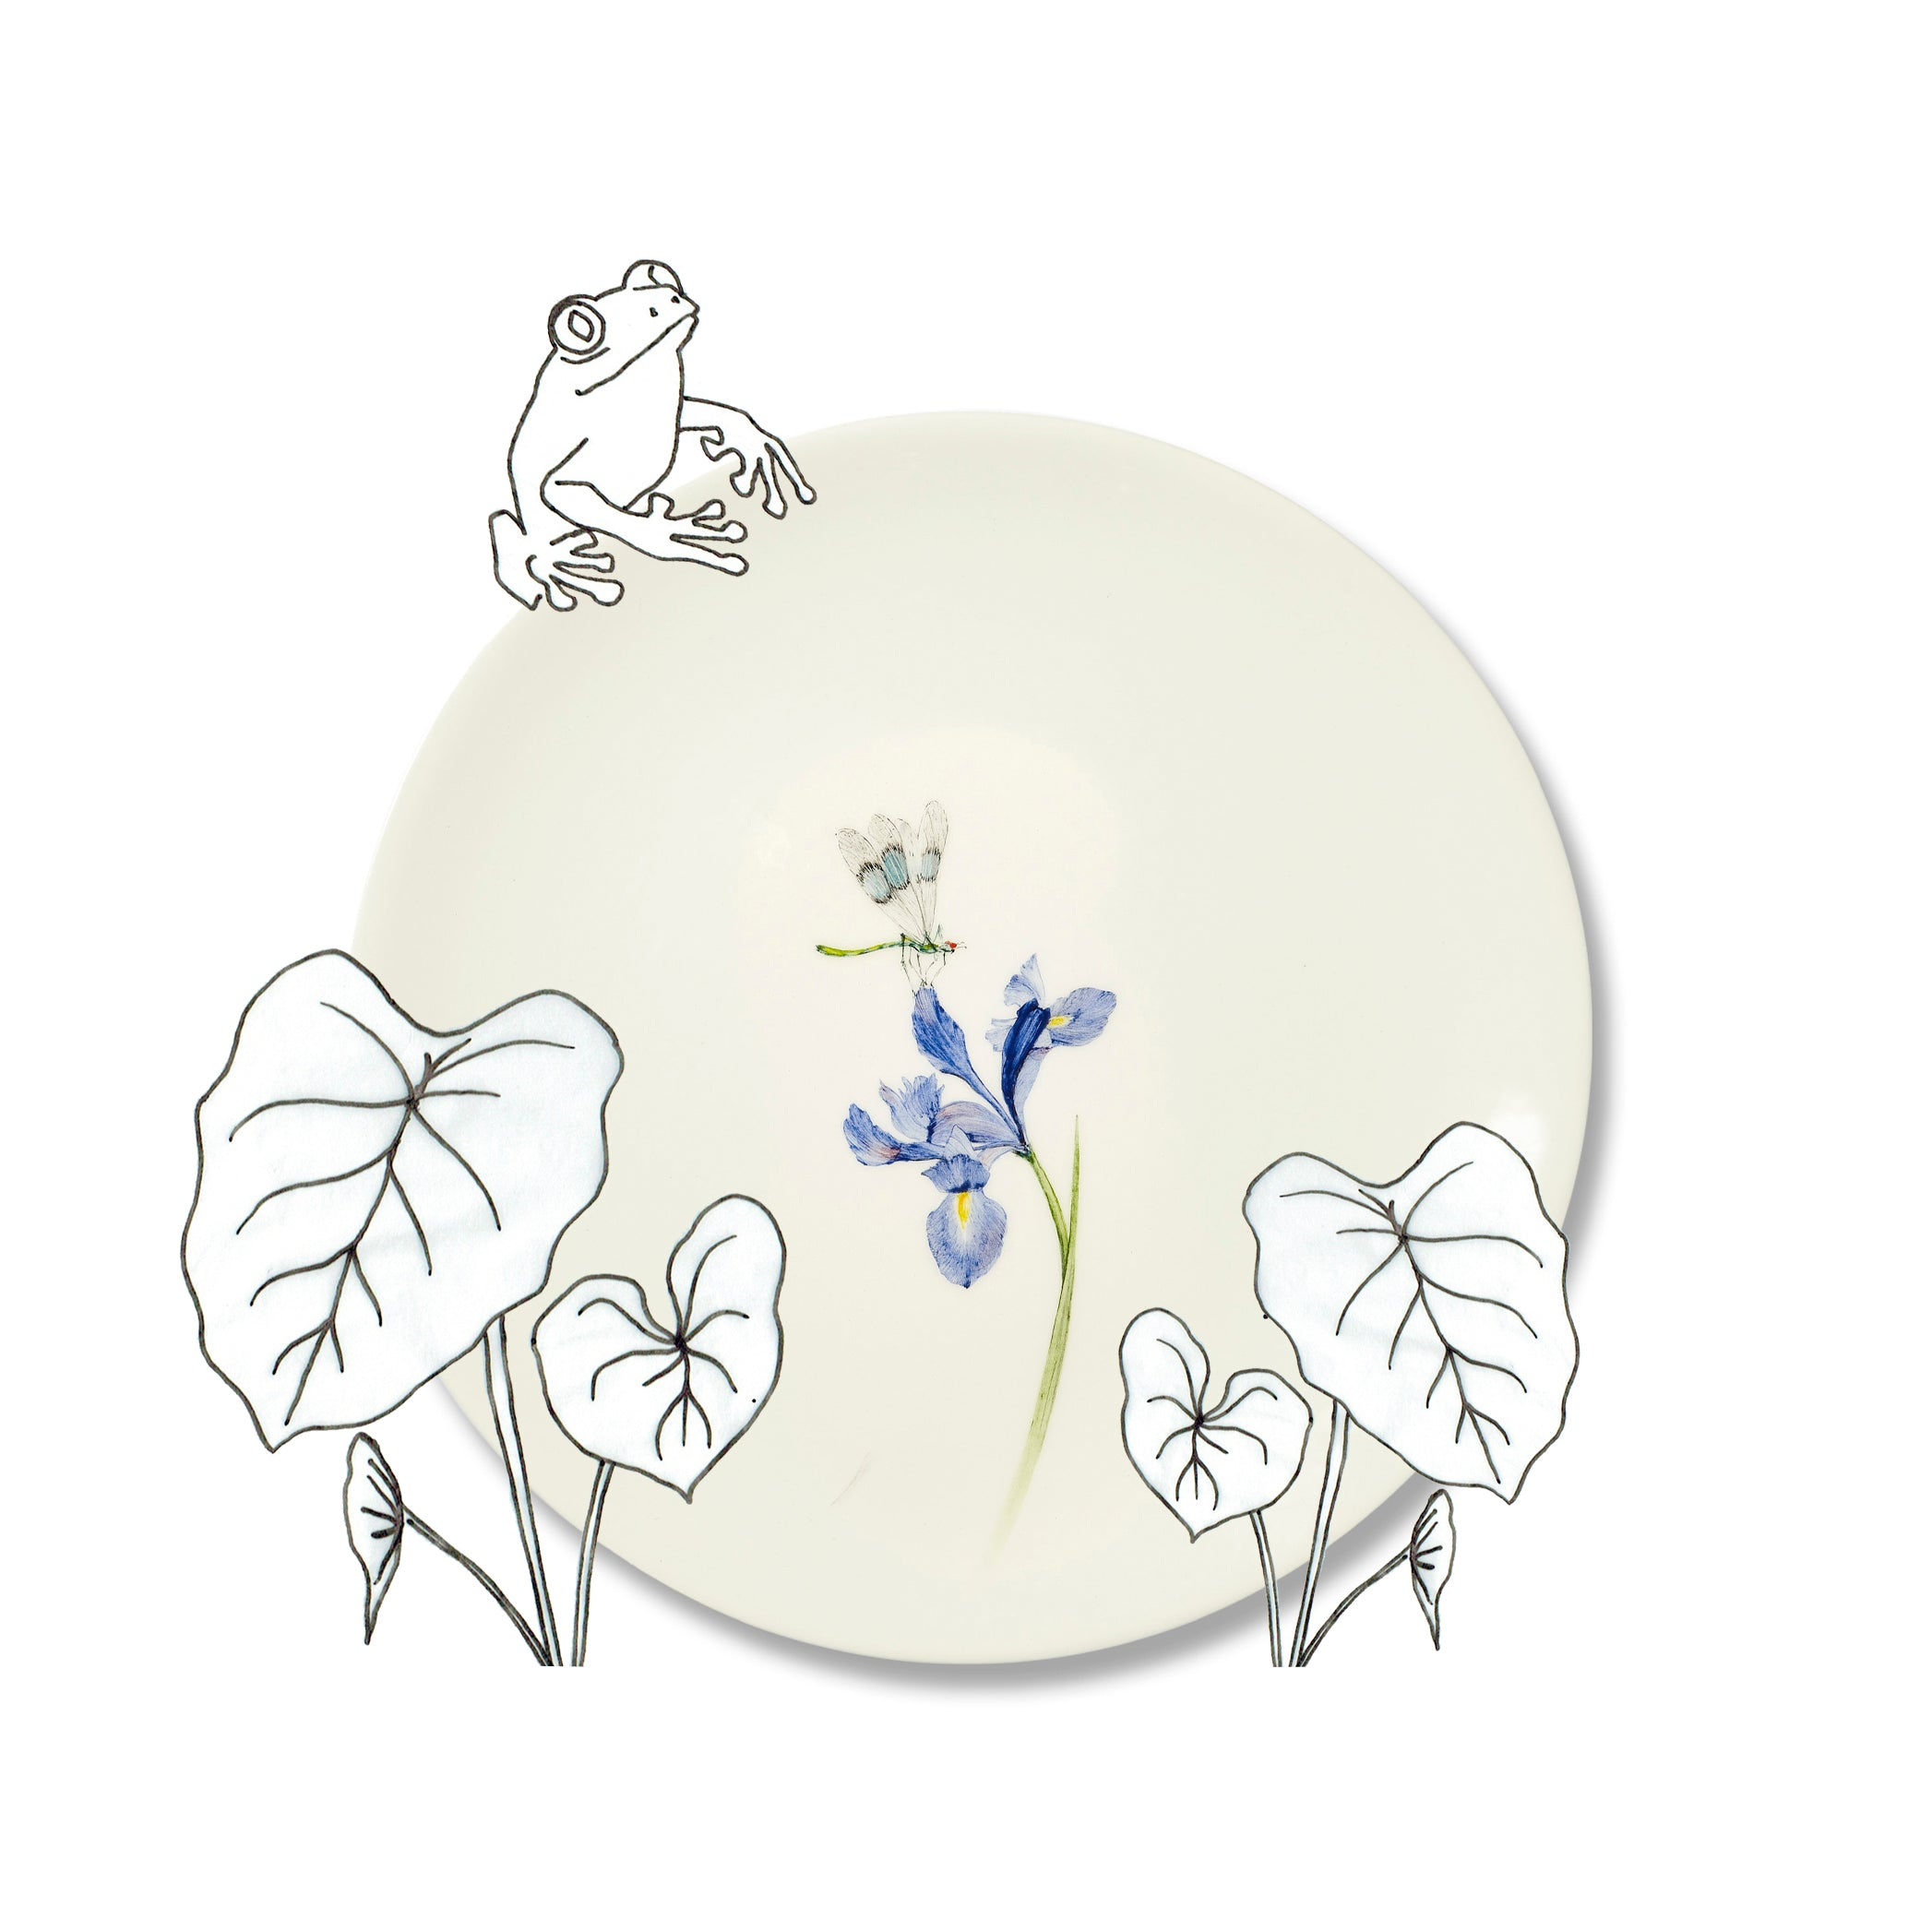 Bloom Iris Dinner Plate, 25cm